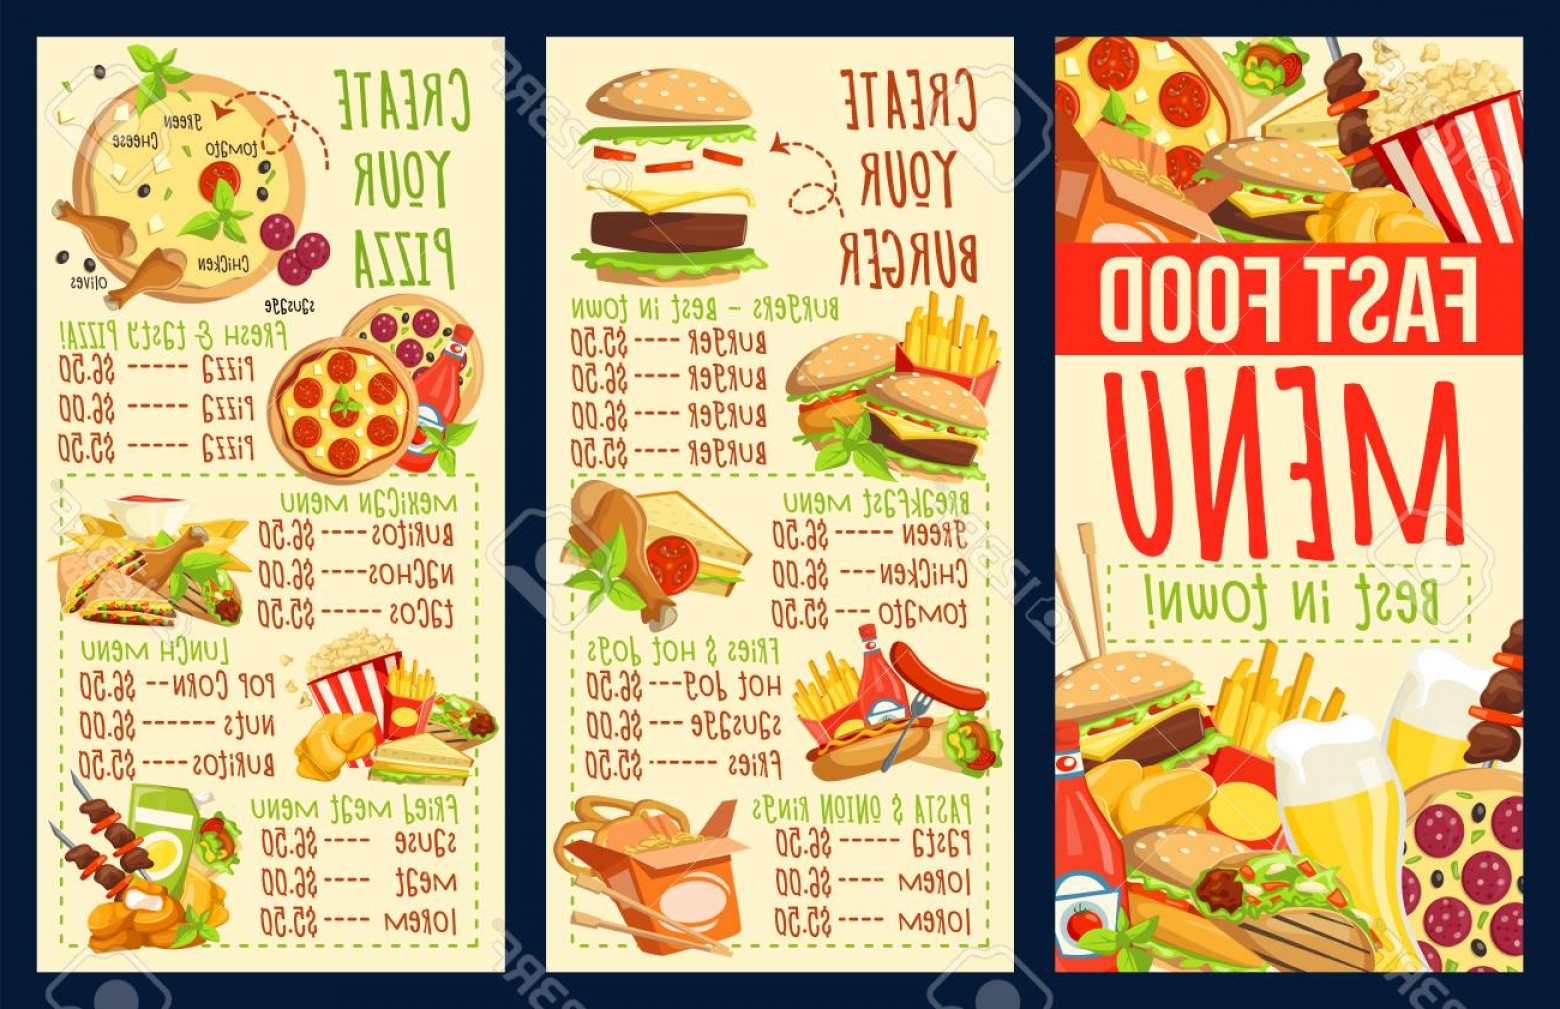 Food Vectors 50 S: Photostock Vector Fast Food Menu Of Fastfood Snacks And Meals Cafe Restaurant Or Bistro Vector Dollar Price Of Burgers